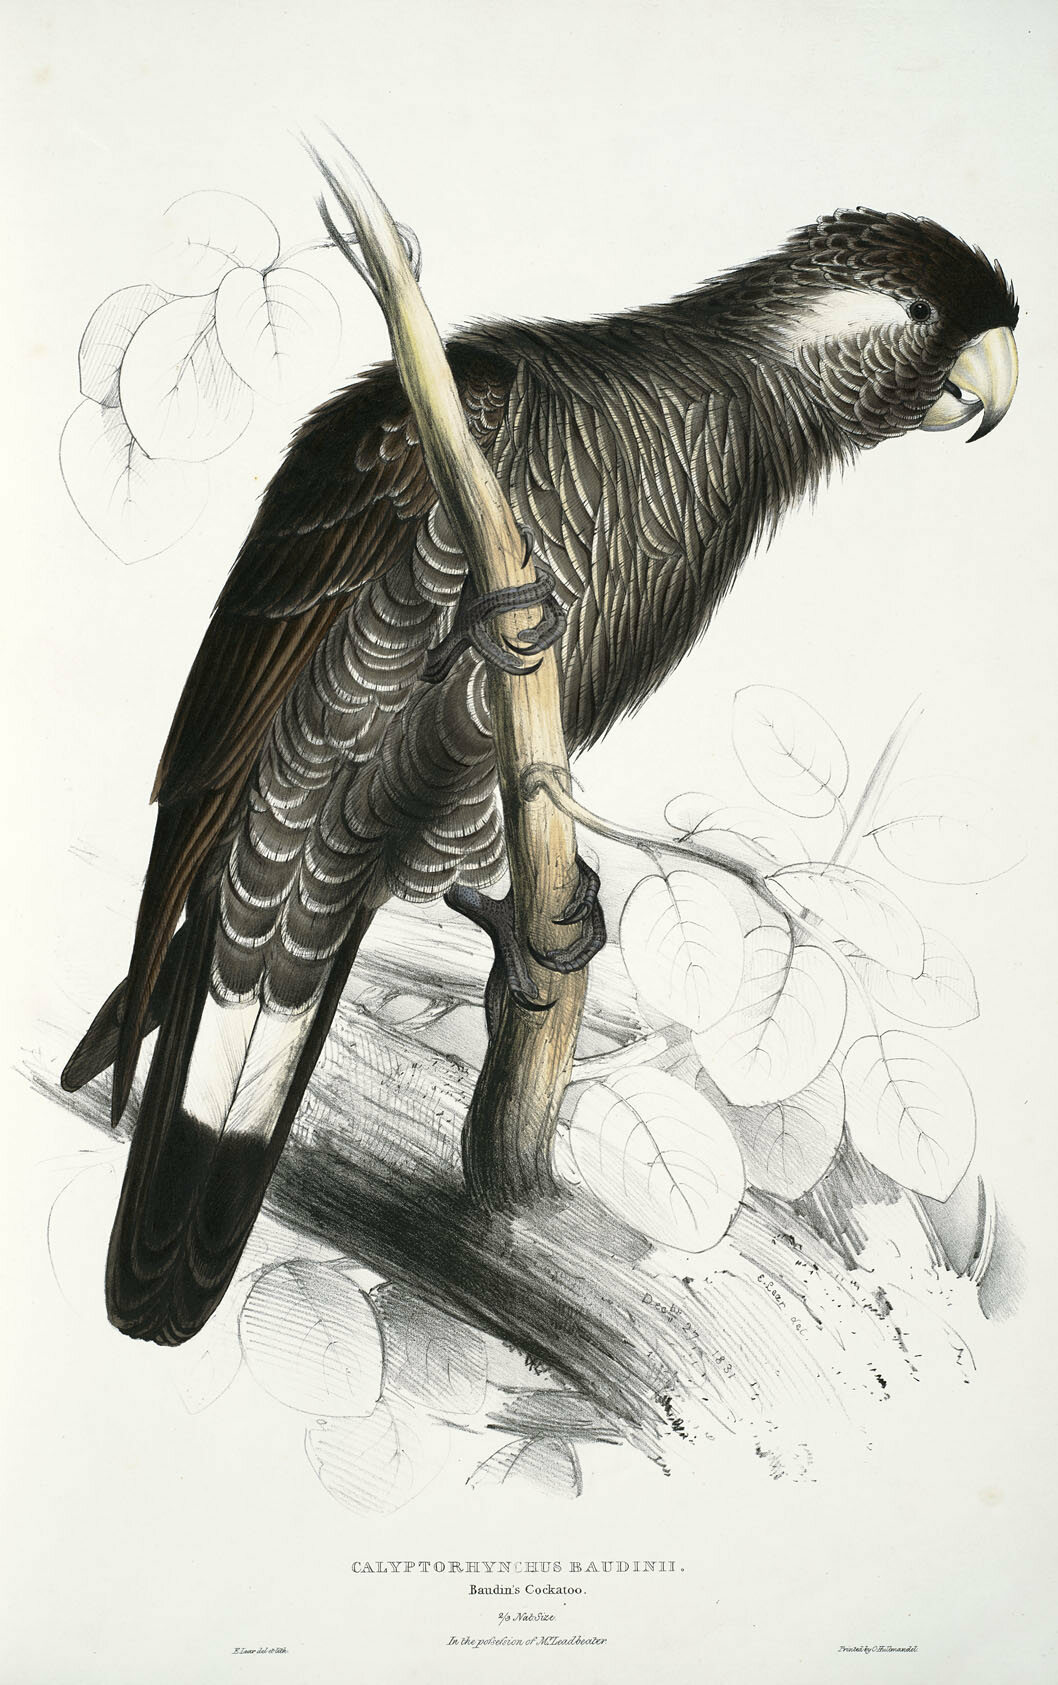 Baudin's cockatoo, a strange bird even by Lear's standards.